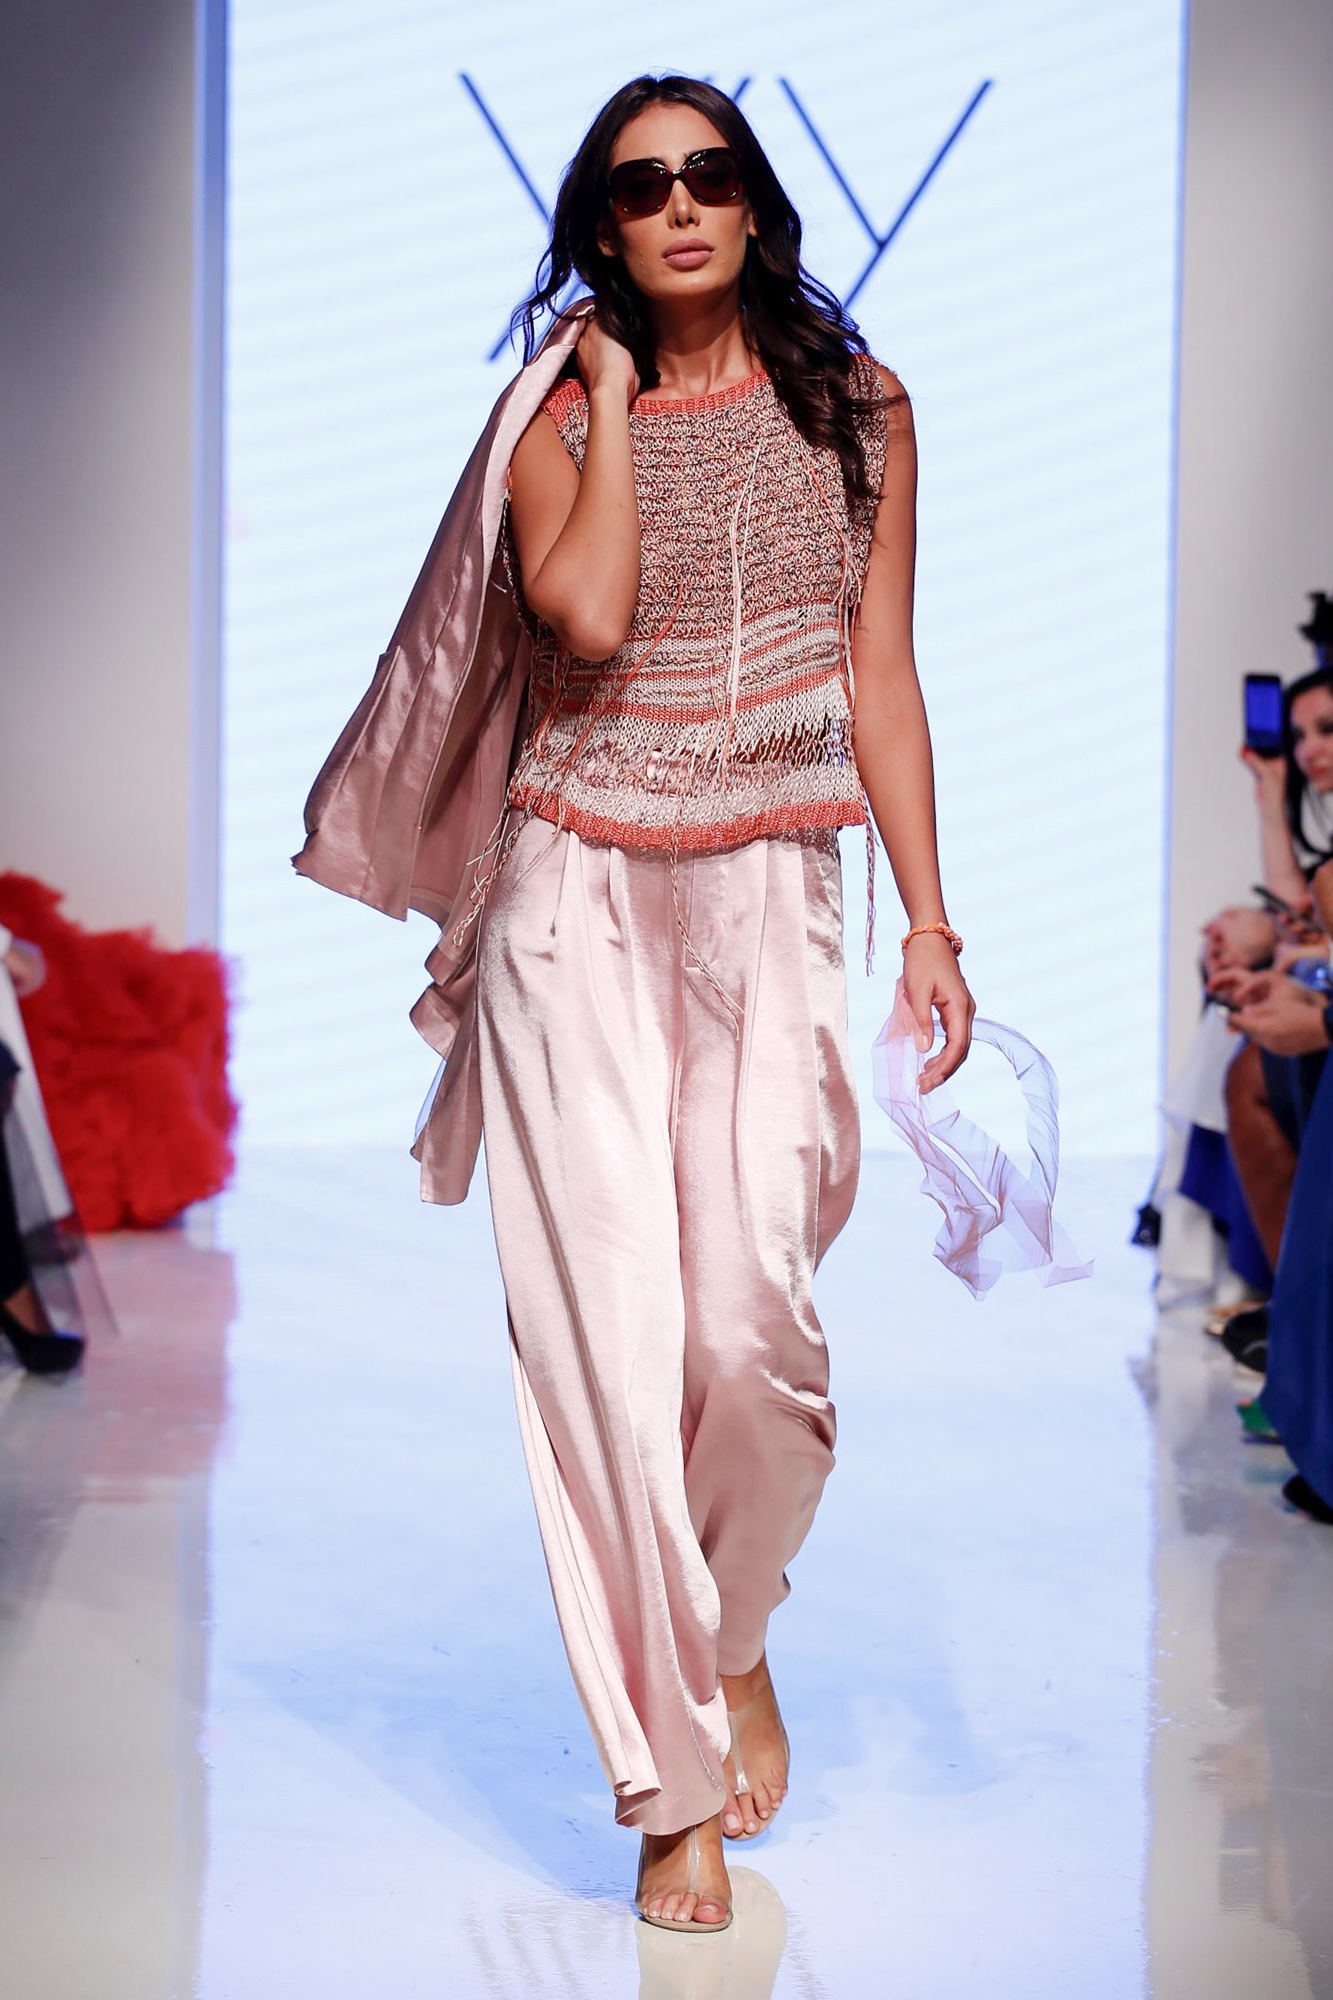 YLY-Studio-Arab-Fashion-Week-SS20-Dubai-5800